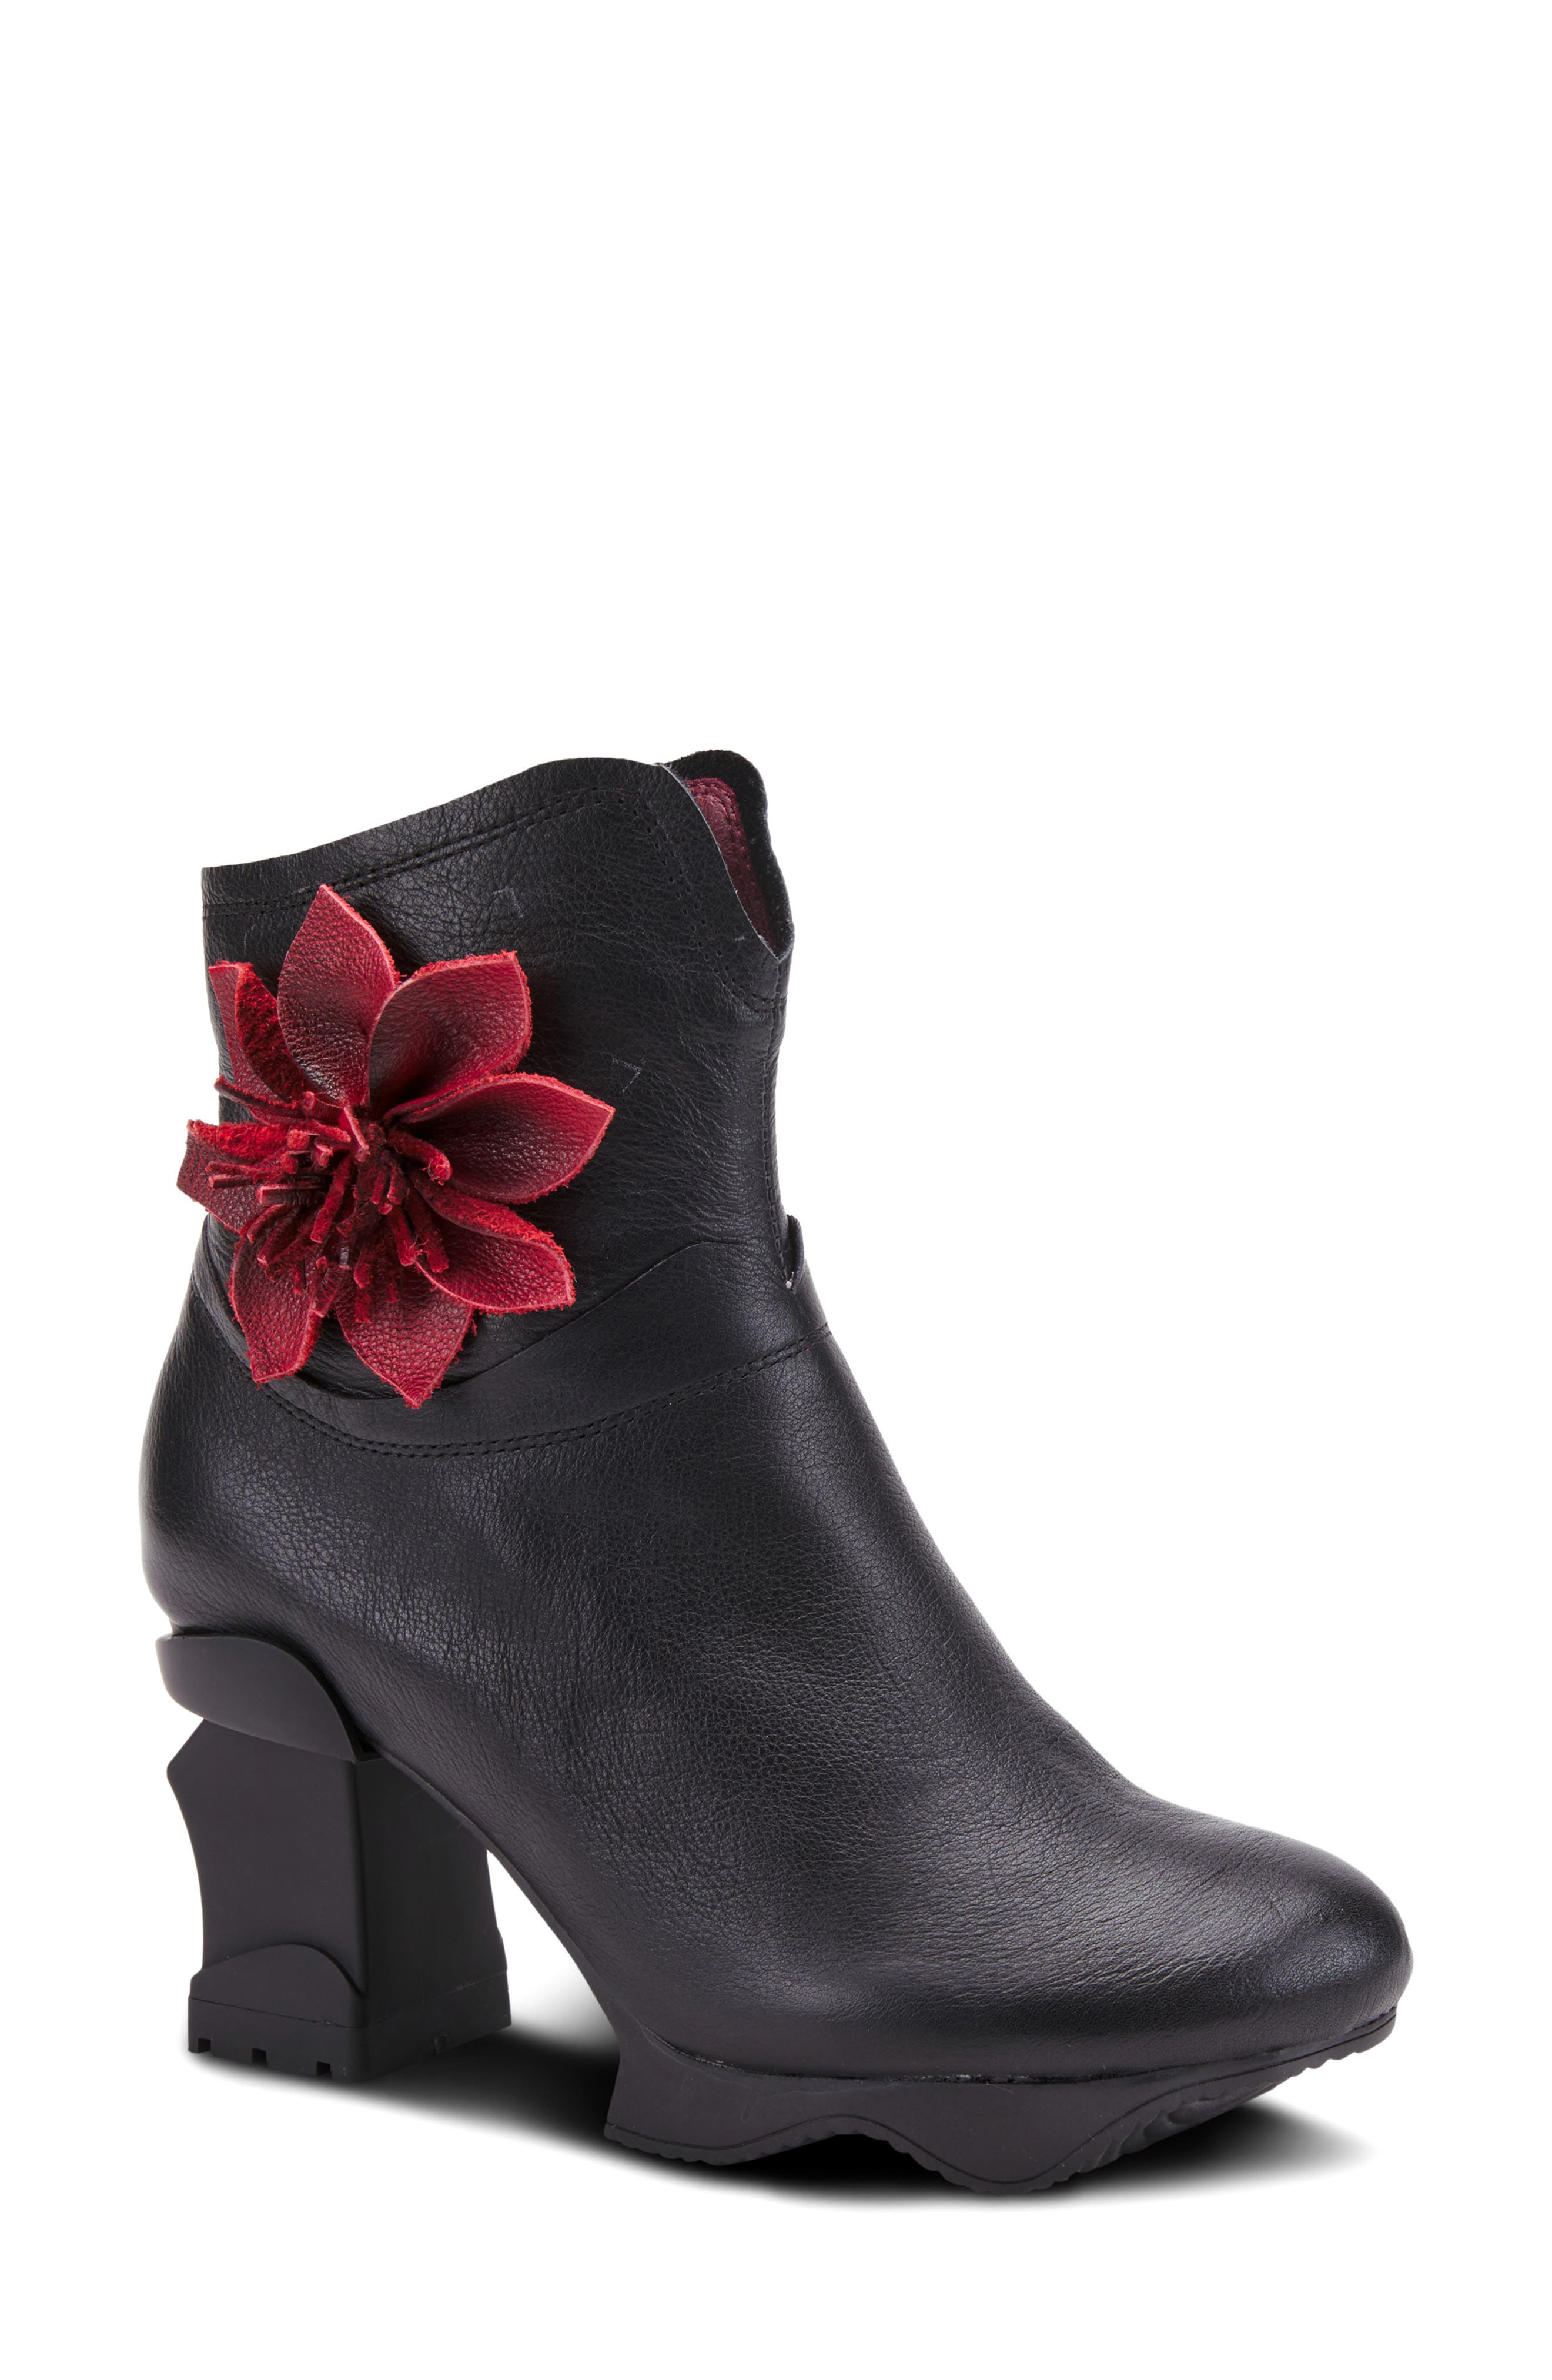 A dimensional leather flower blooms at the ankle of this statement bootie grounded by a sculptural wave-textured platform and heel. Style Name:L\\\'Artiste Flockrol Bootie (Women). Style Number: 6117453. Available in stores.